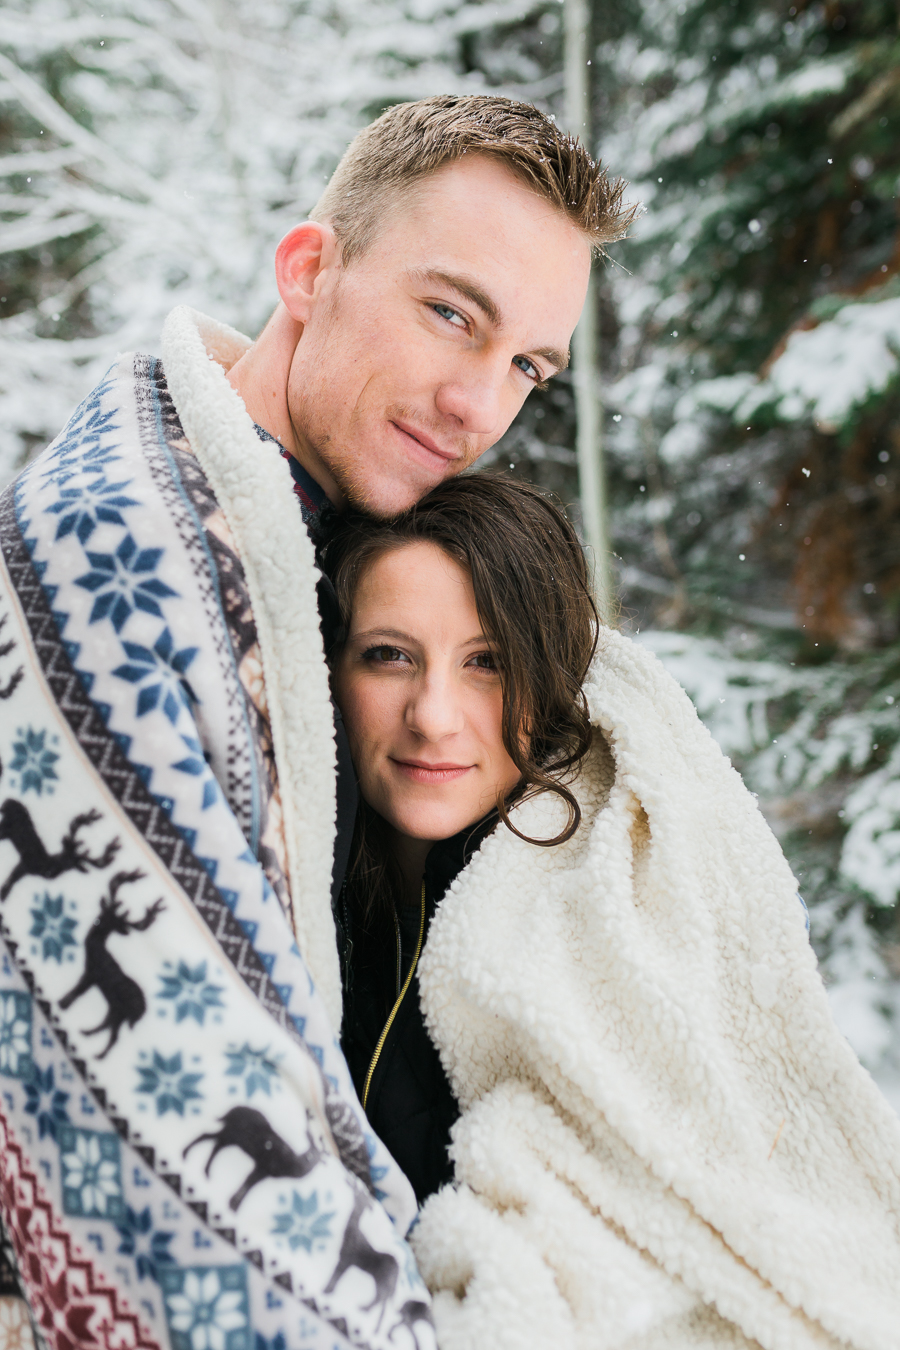 Newlywedded Bliss: Nick and Annie